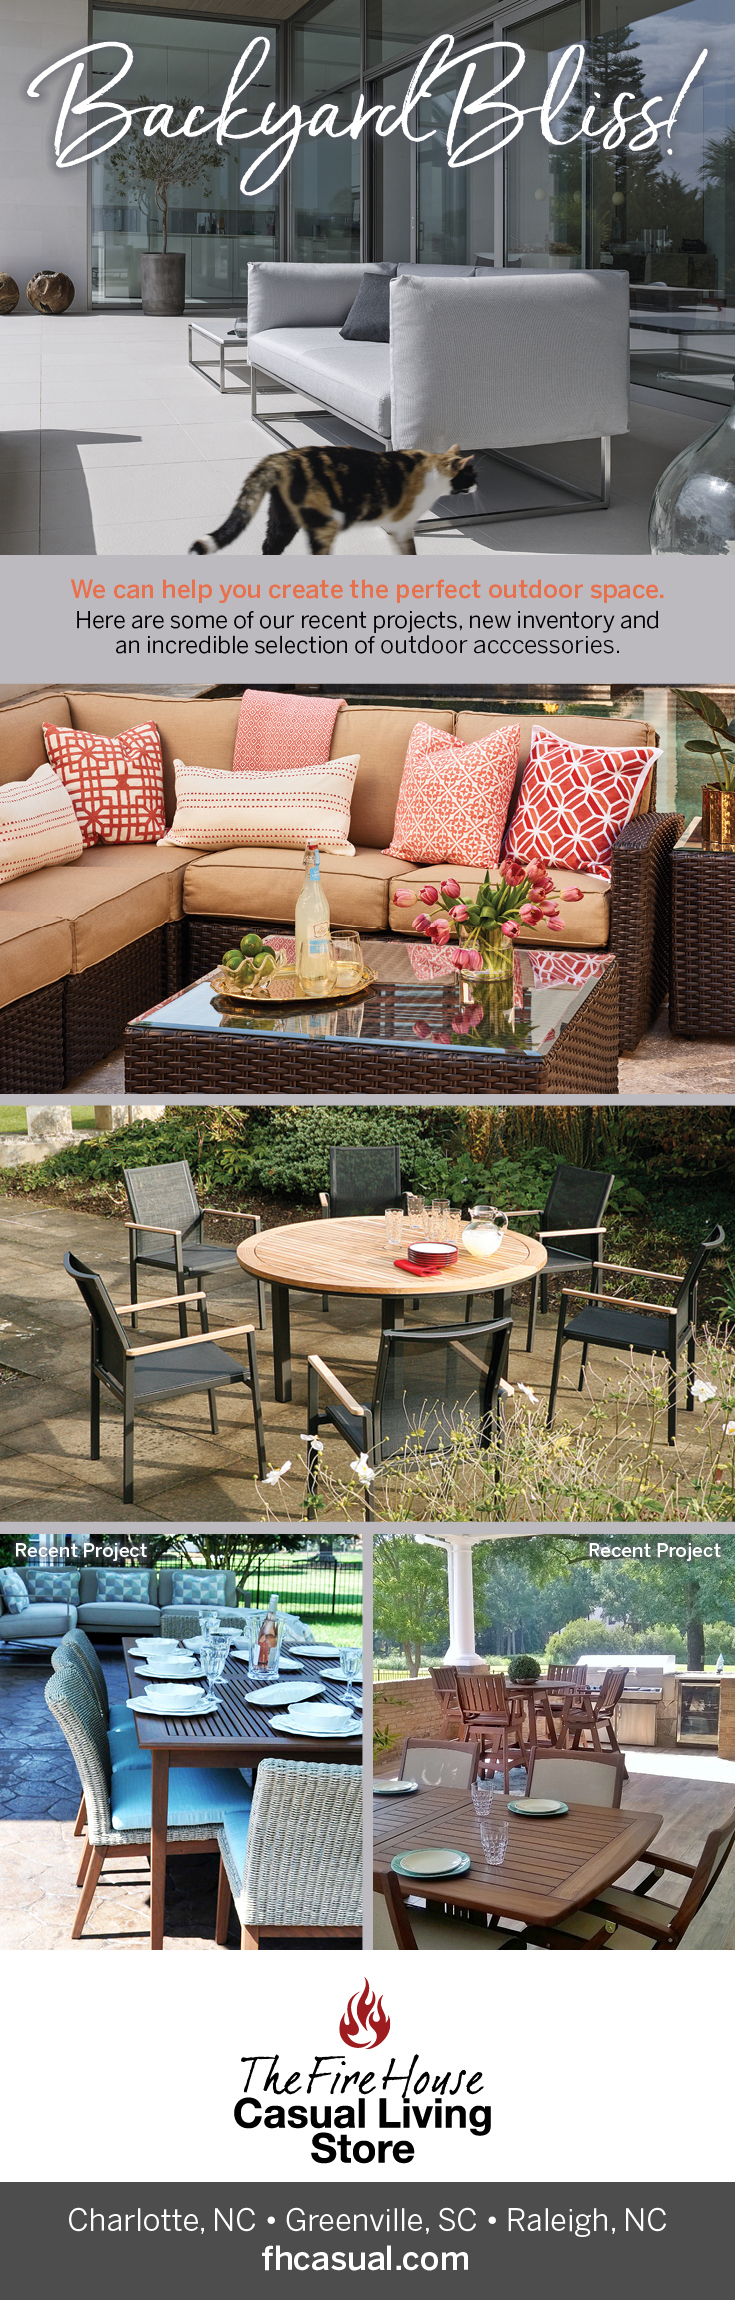 Pin On Backyard Bliss Outdoor Furniture Accessories And Stylish